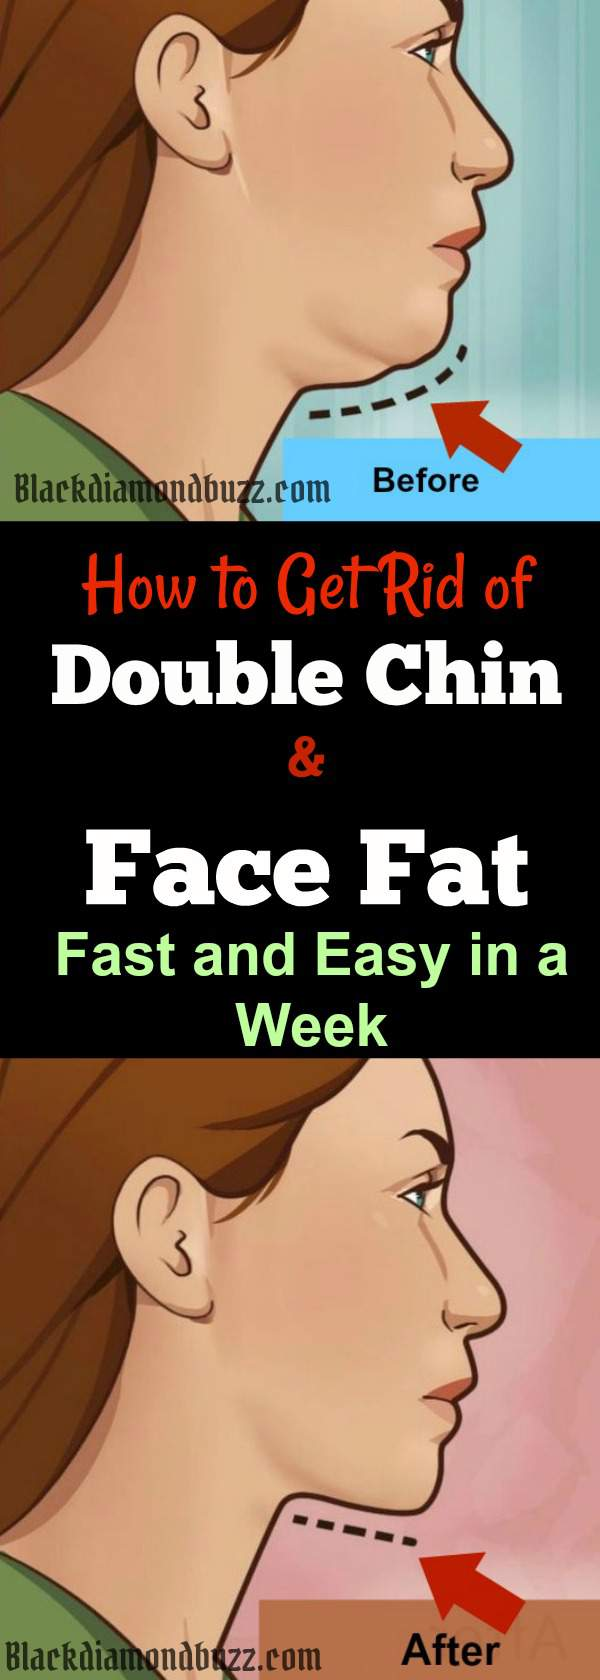 How to Get Rid of Double Chin and Face Fat Fast and Easy in a Week